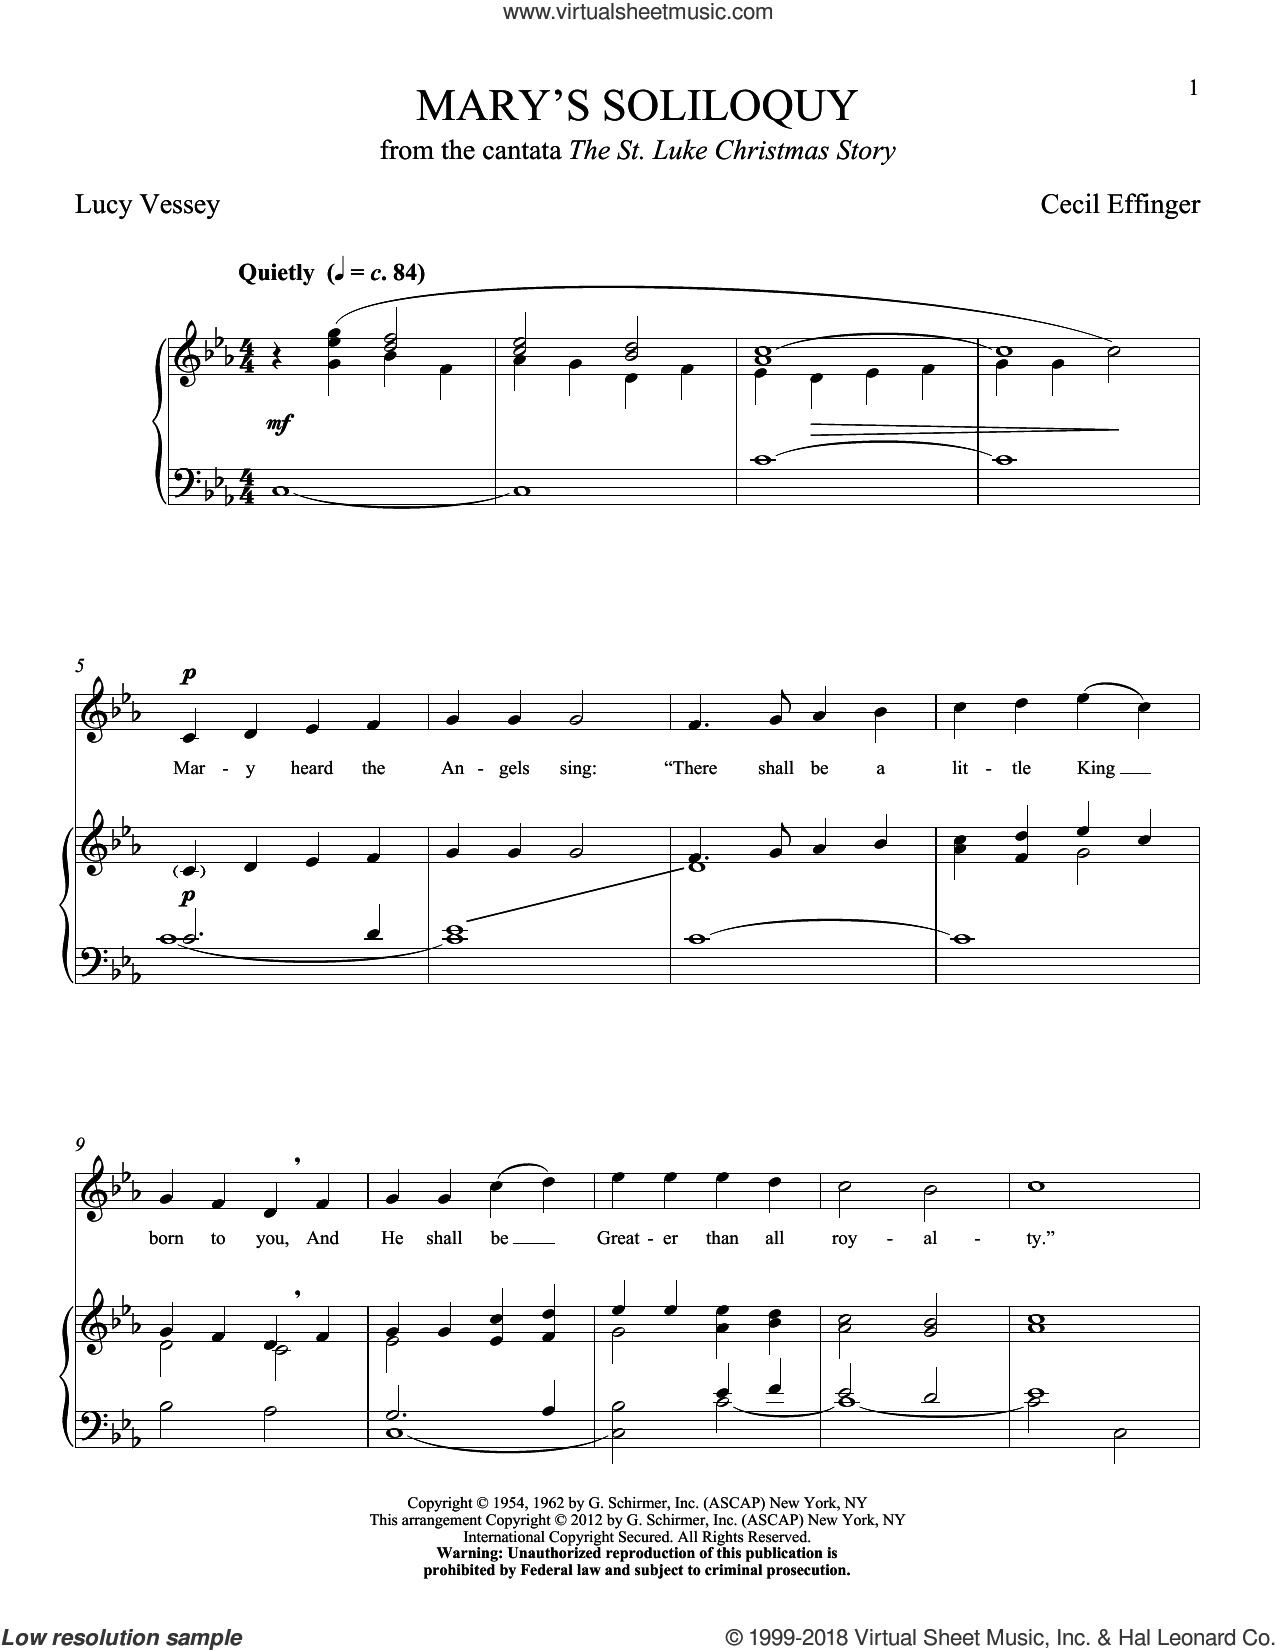 Mary's Soliloquy sheet music for voice and piano (High Voice) by Cecil Effinger, classical score, intermediate skill level